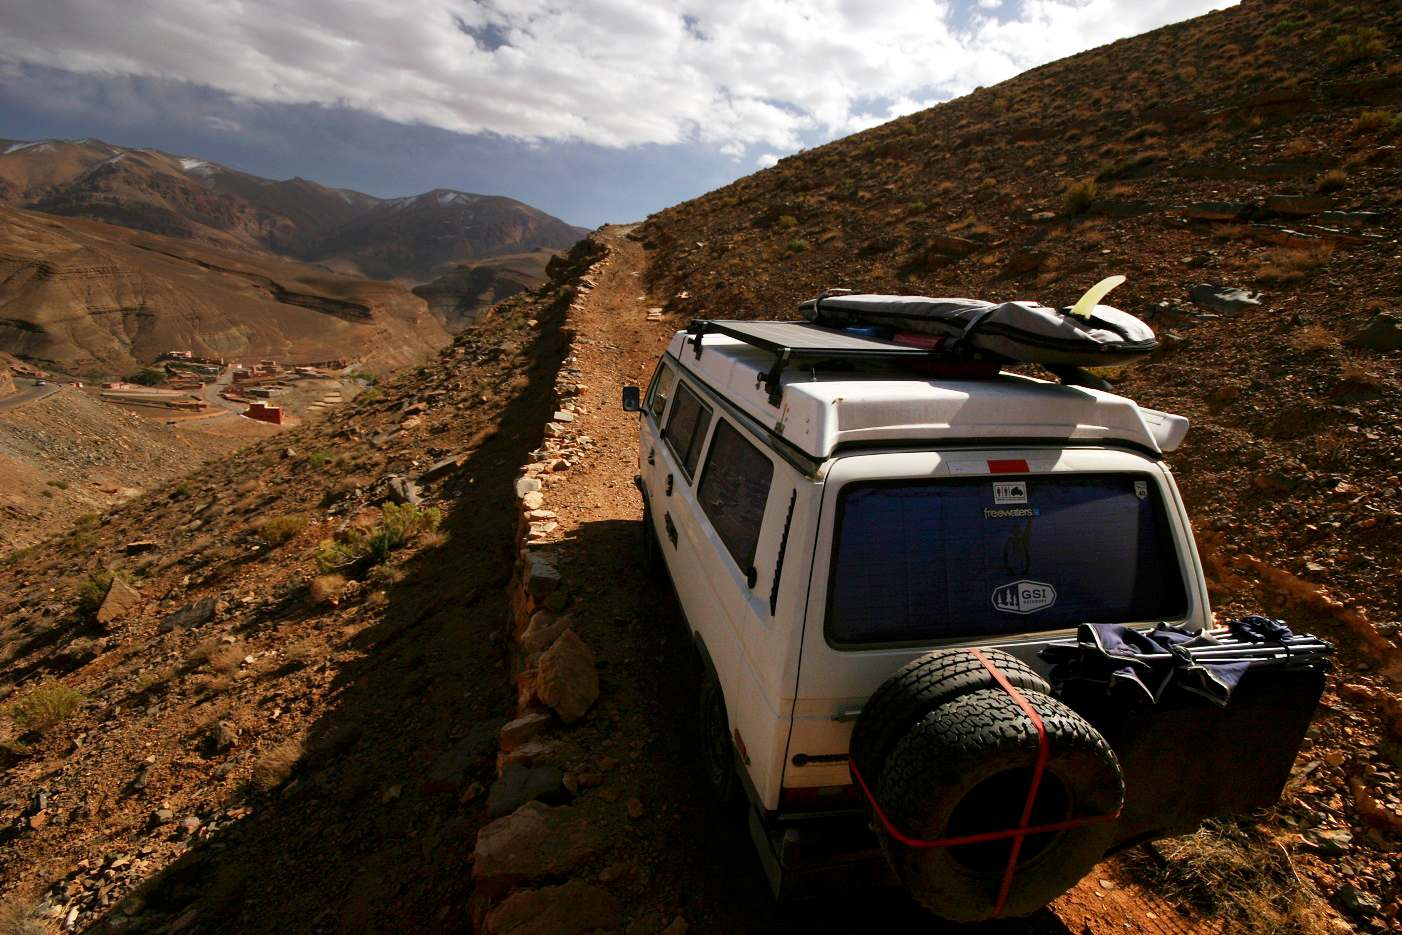 Climbing into the Atlas Mountains in Morocco